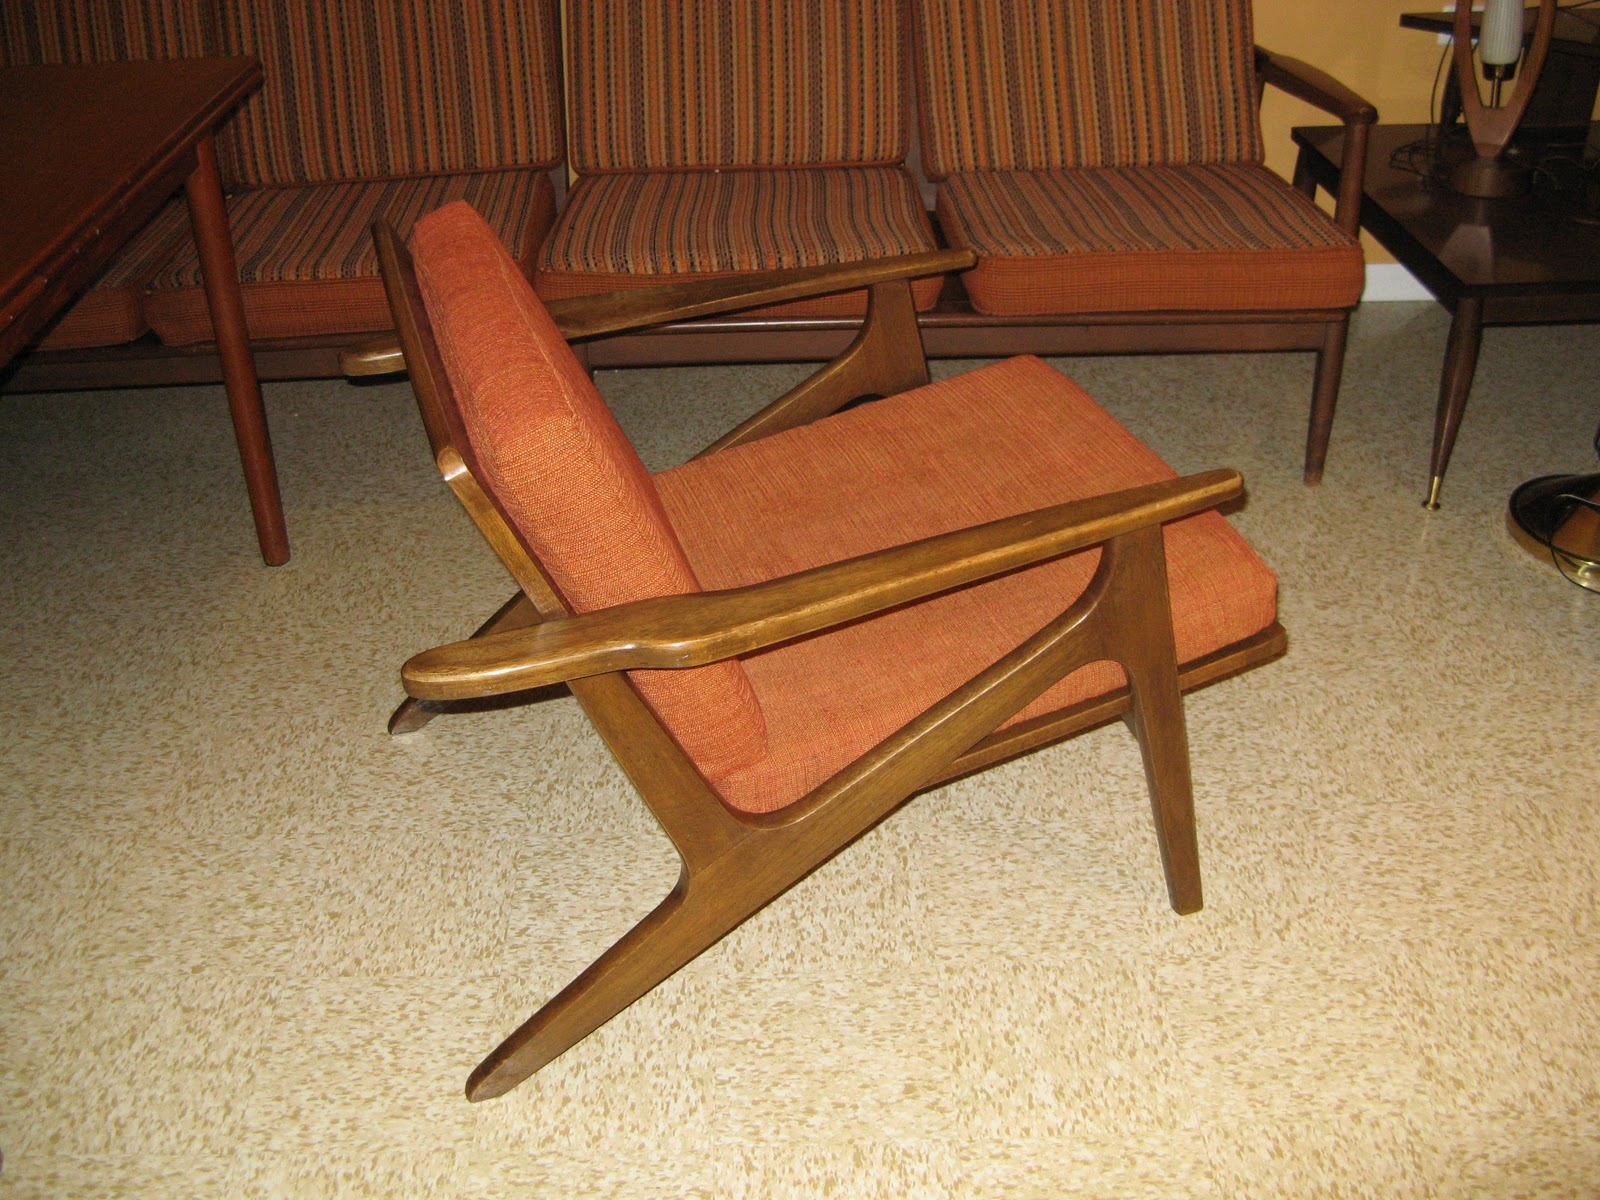 z chair mid century royal covers midcenturymodernmania gmail danish modern